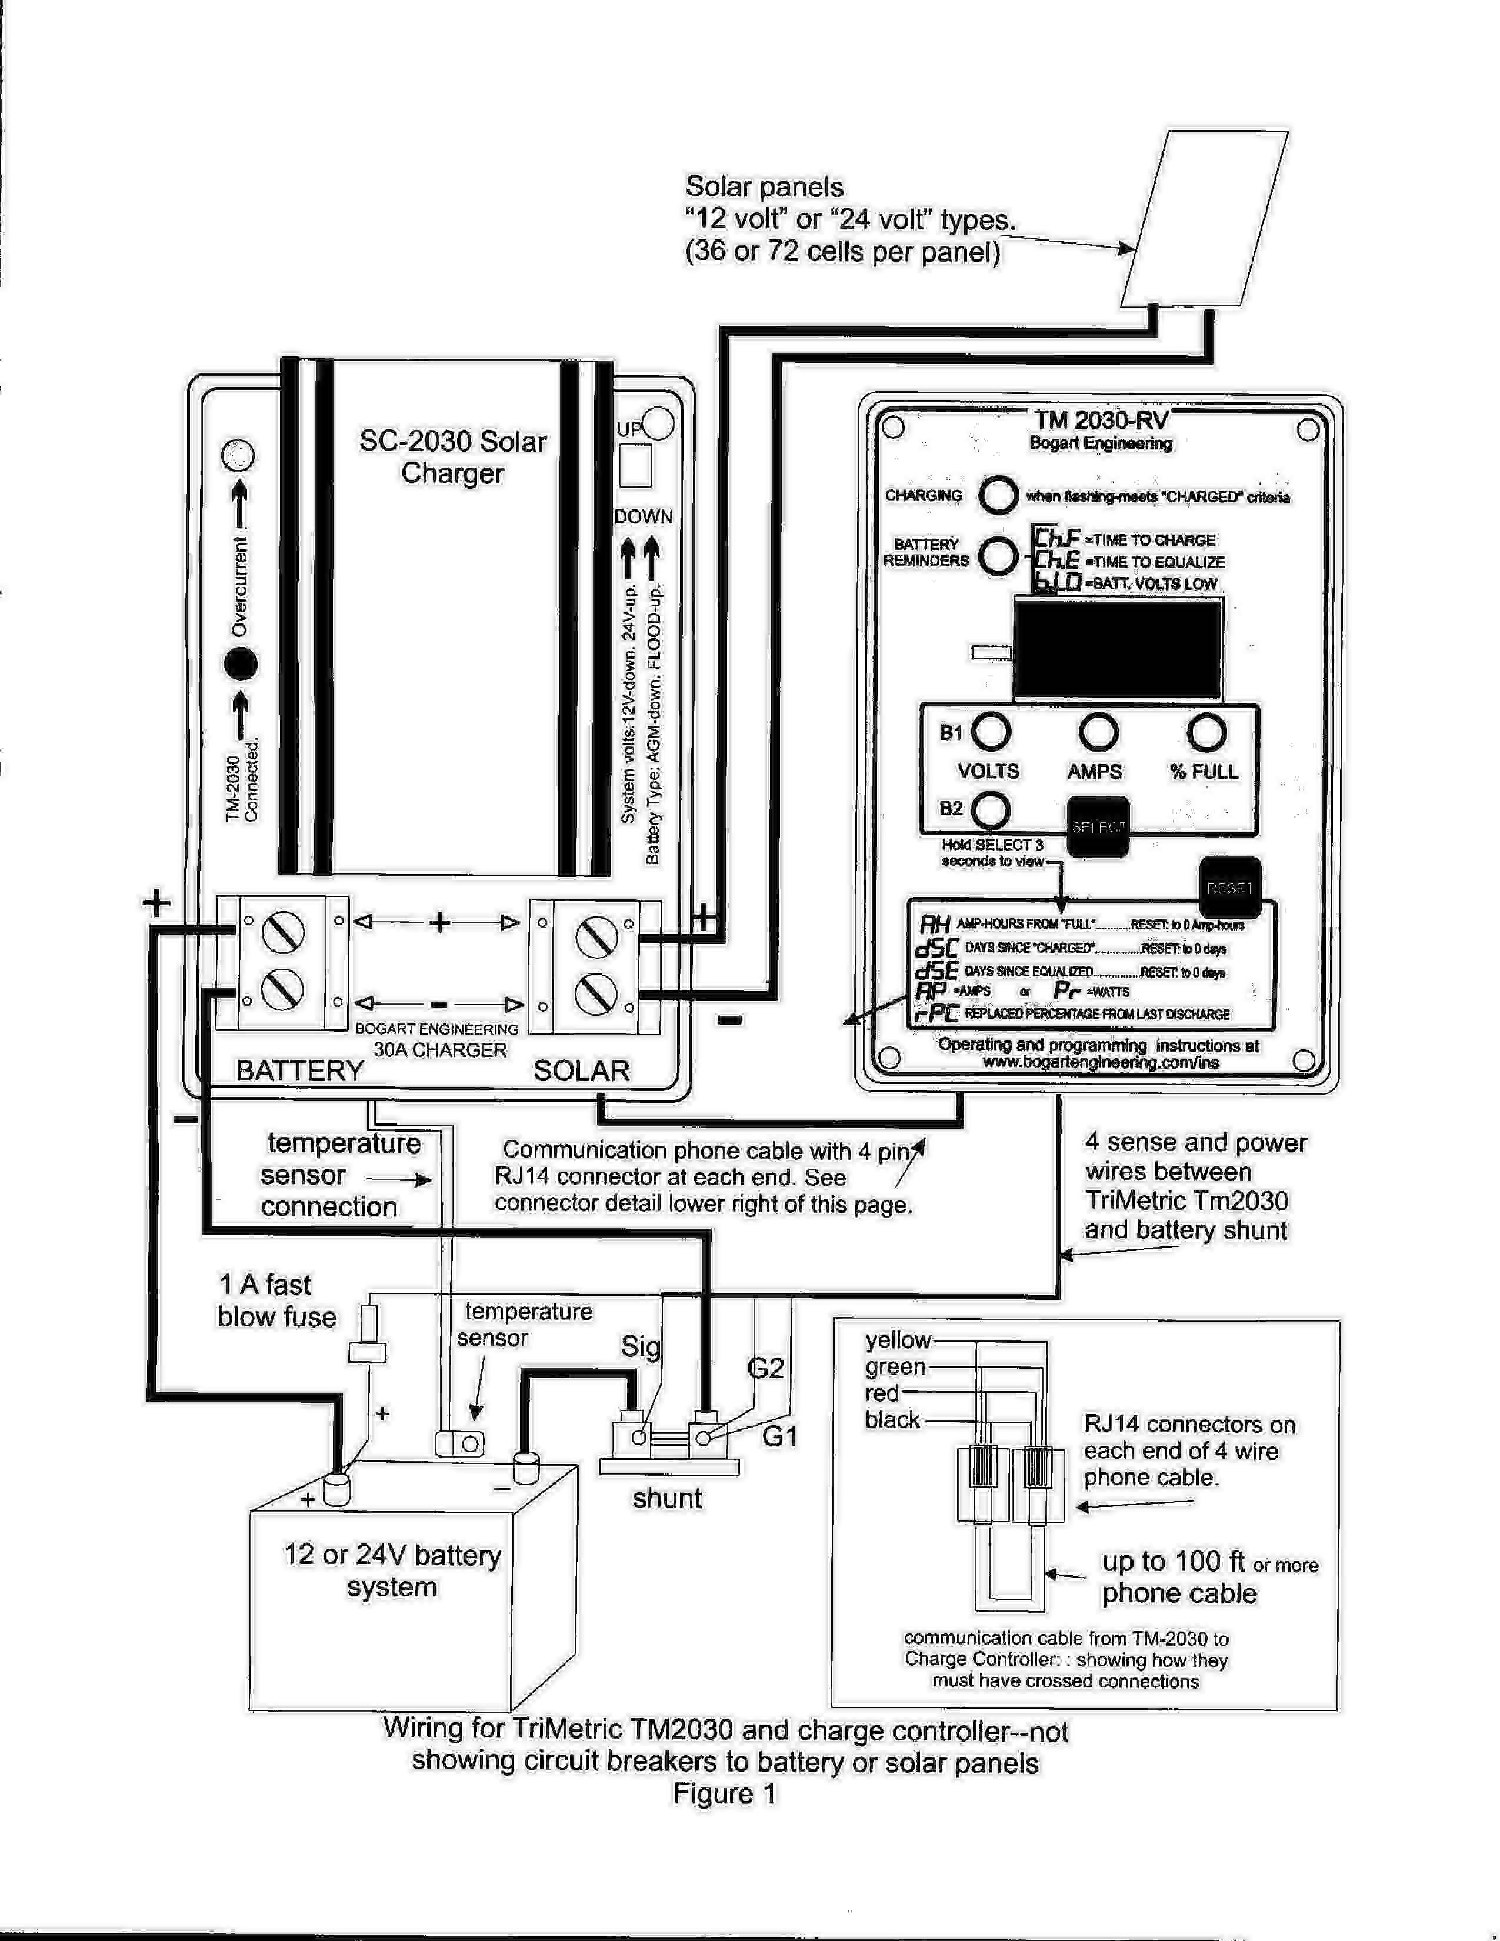 4331dc950?resize=665%2C861 power sentry psq500 wiring diagram pontiac montana engine diagram power sentry psq500 wiring diagram at panicattacktreatment.co